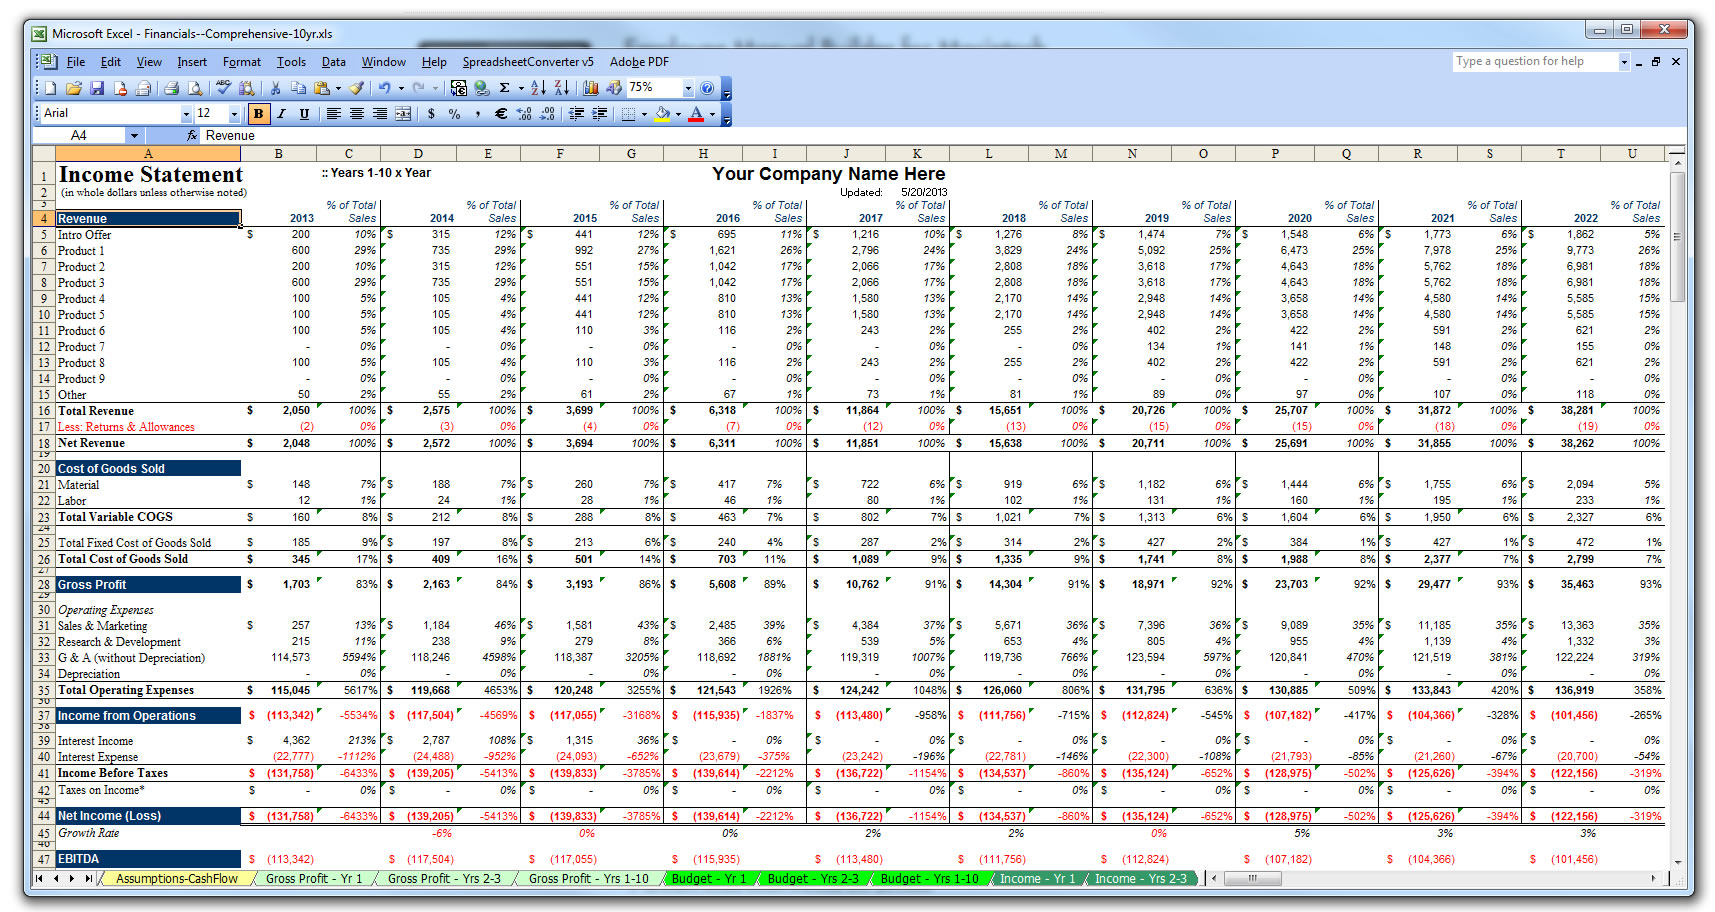 Sample p l excel zrom how to create a p l in excel sample pccatlantic spreadsheet cheaphphosting Gallery